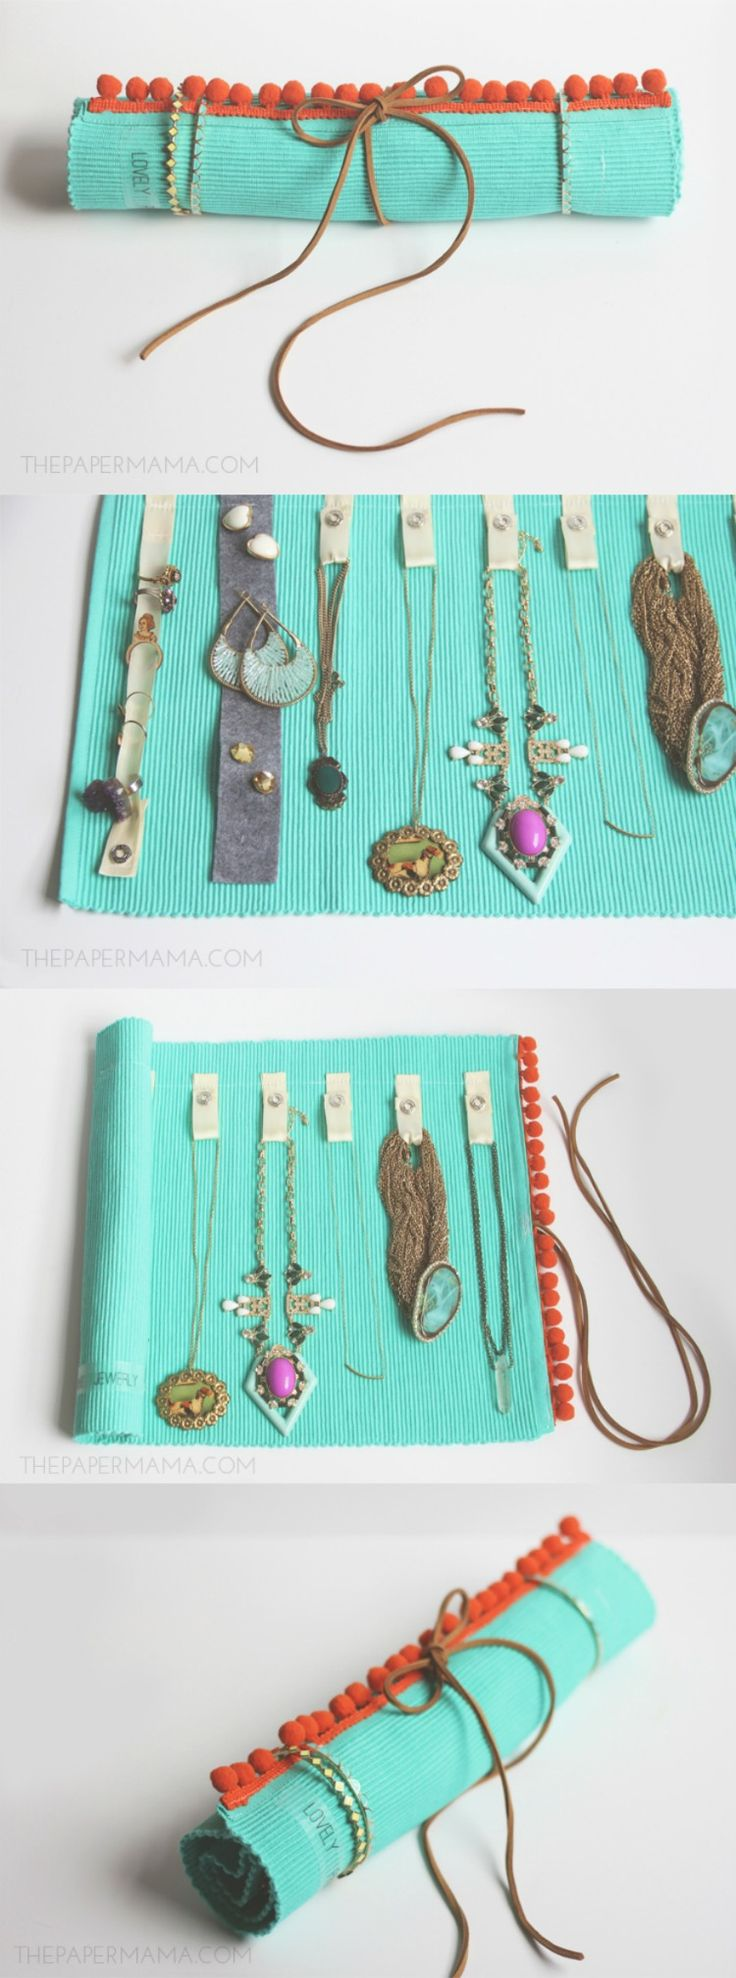 How to make a DIY jewelry roll